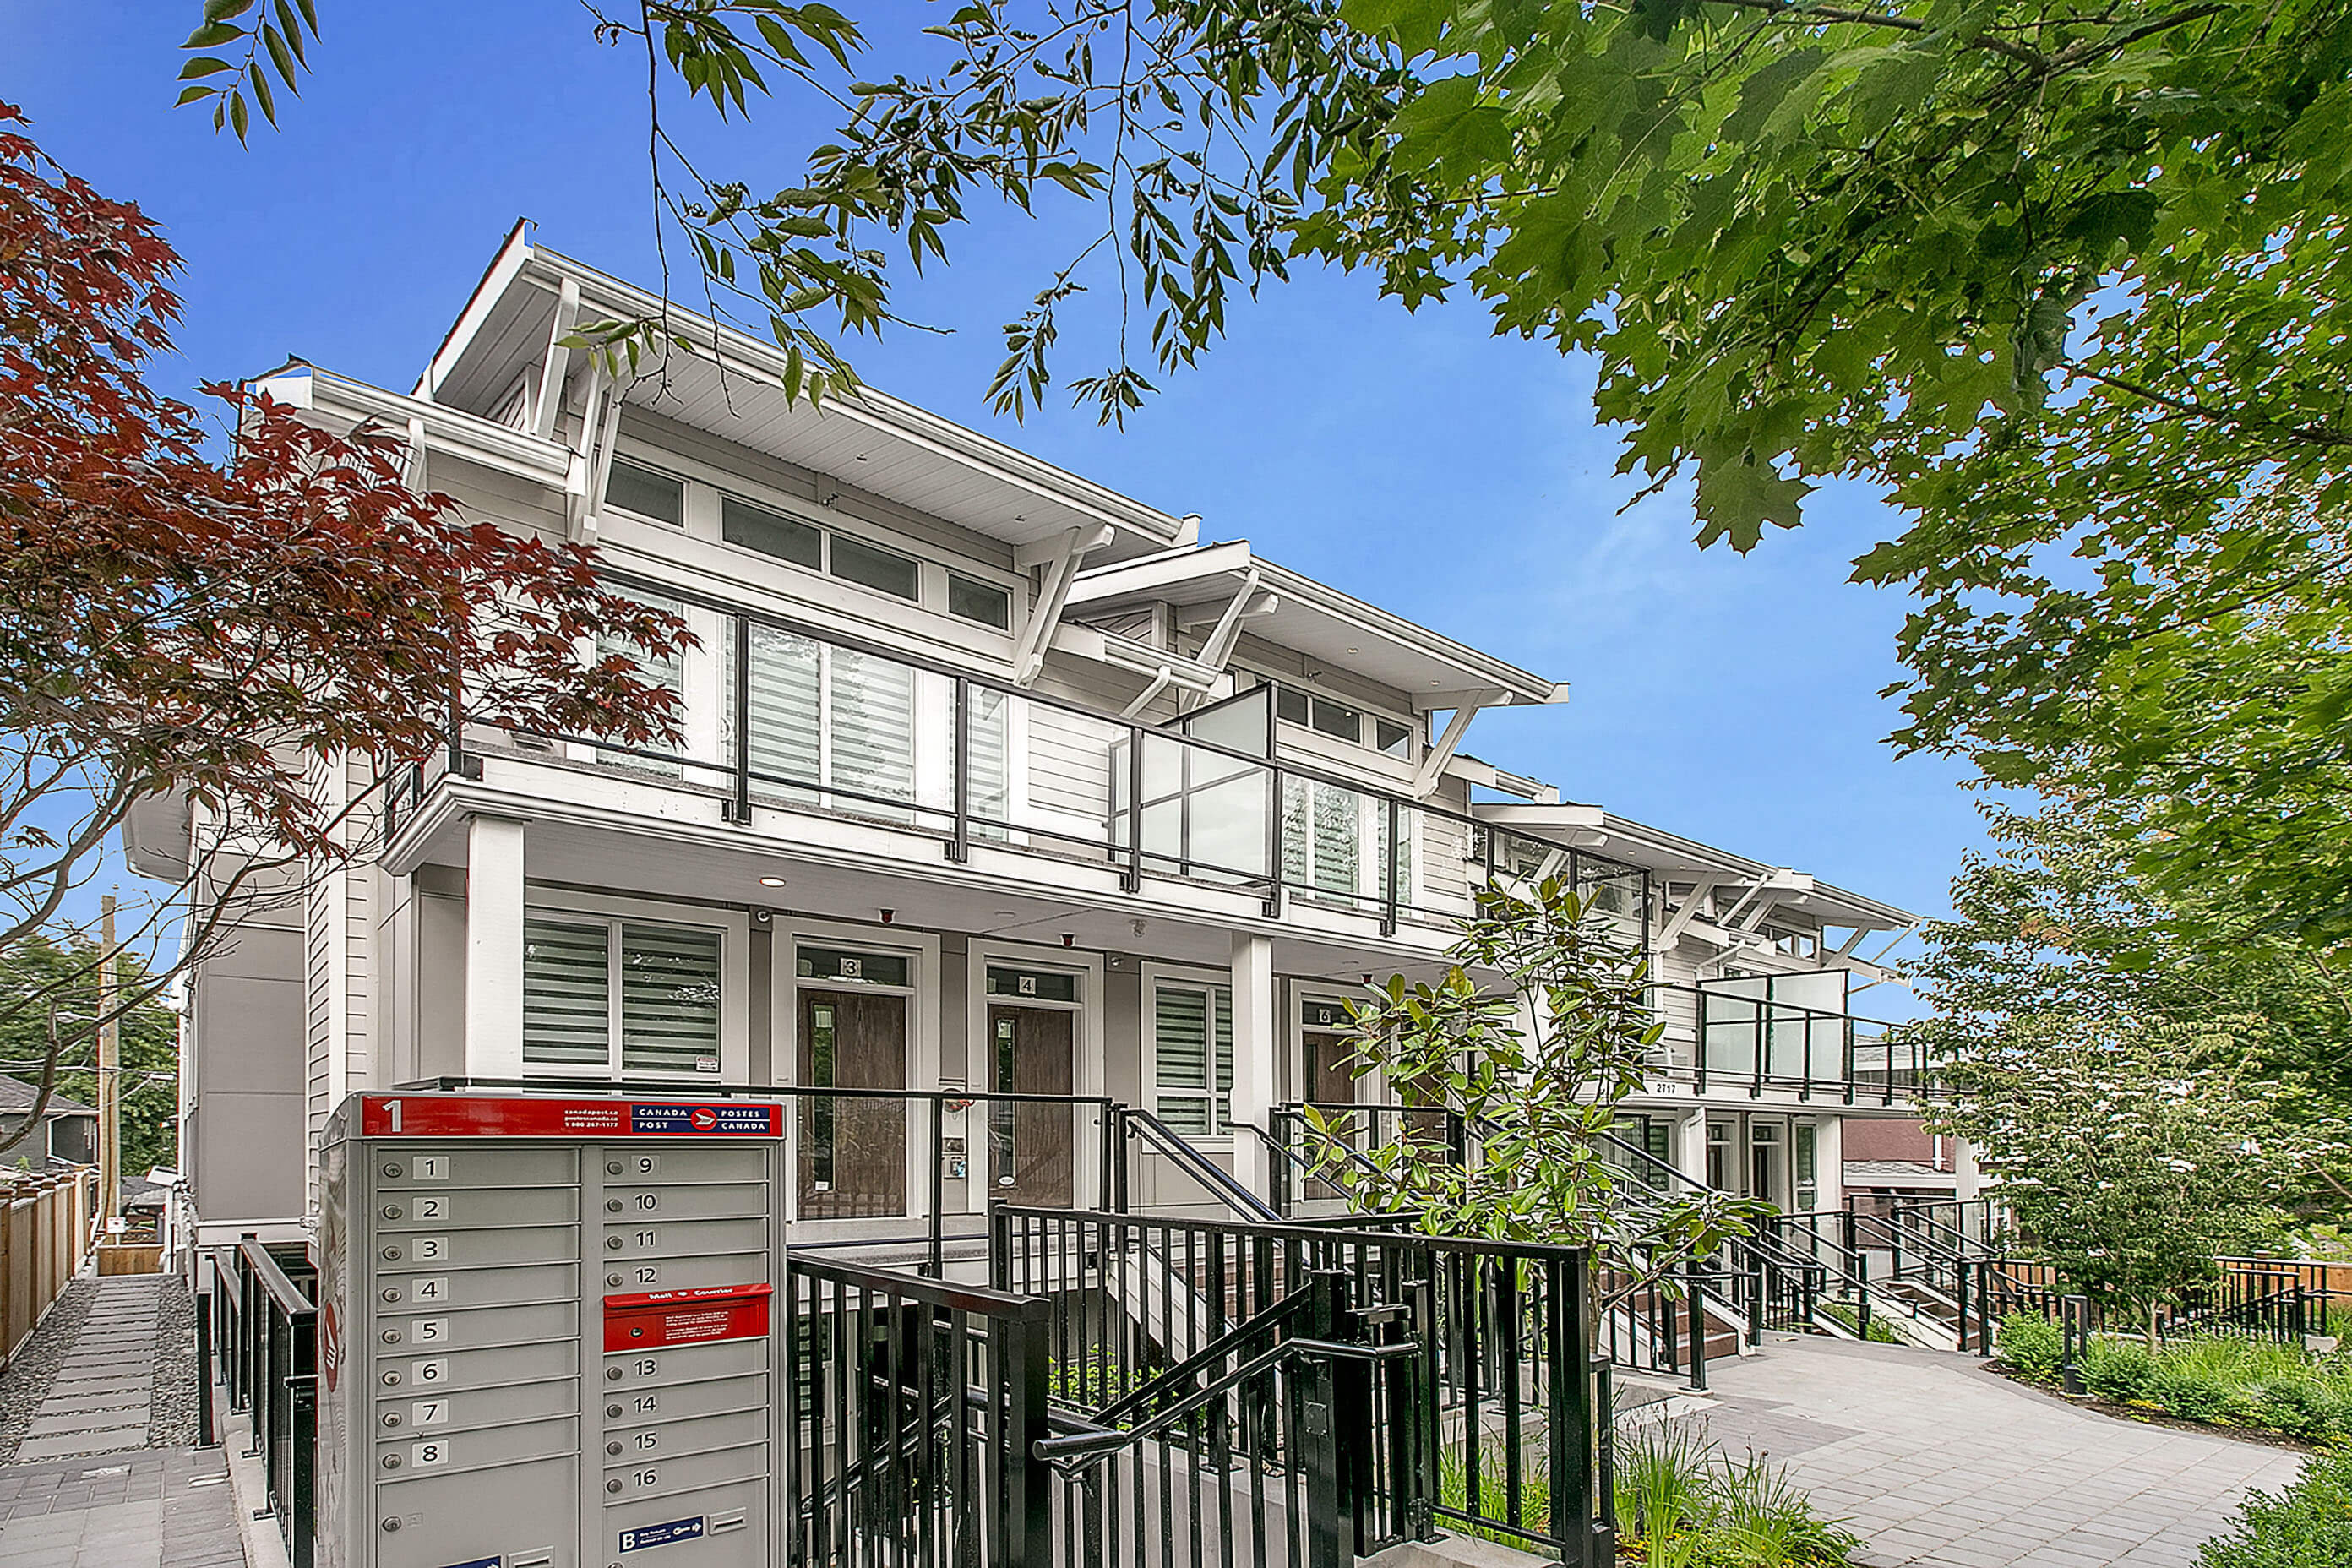 Building Exterior - 2717 Horley St, Vancouver, BC V5R 4R7, Canada!